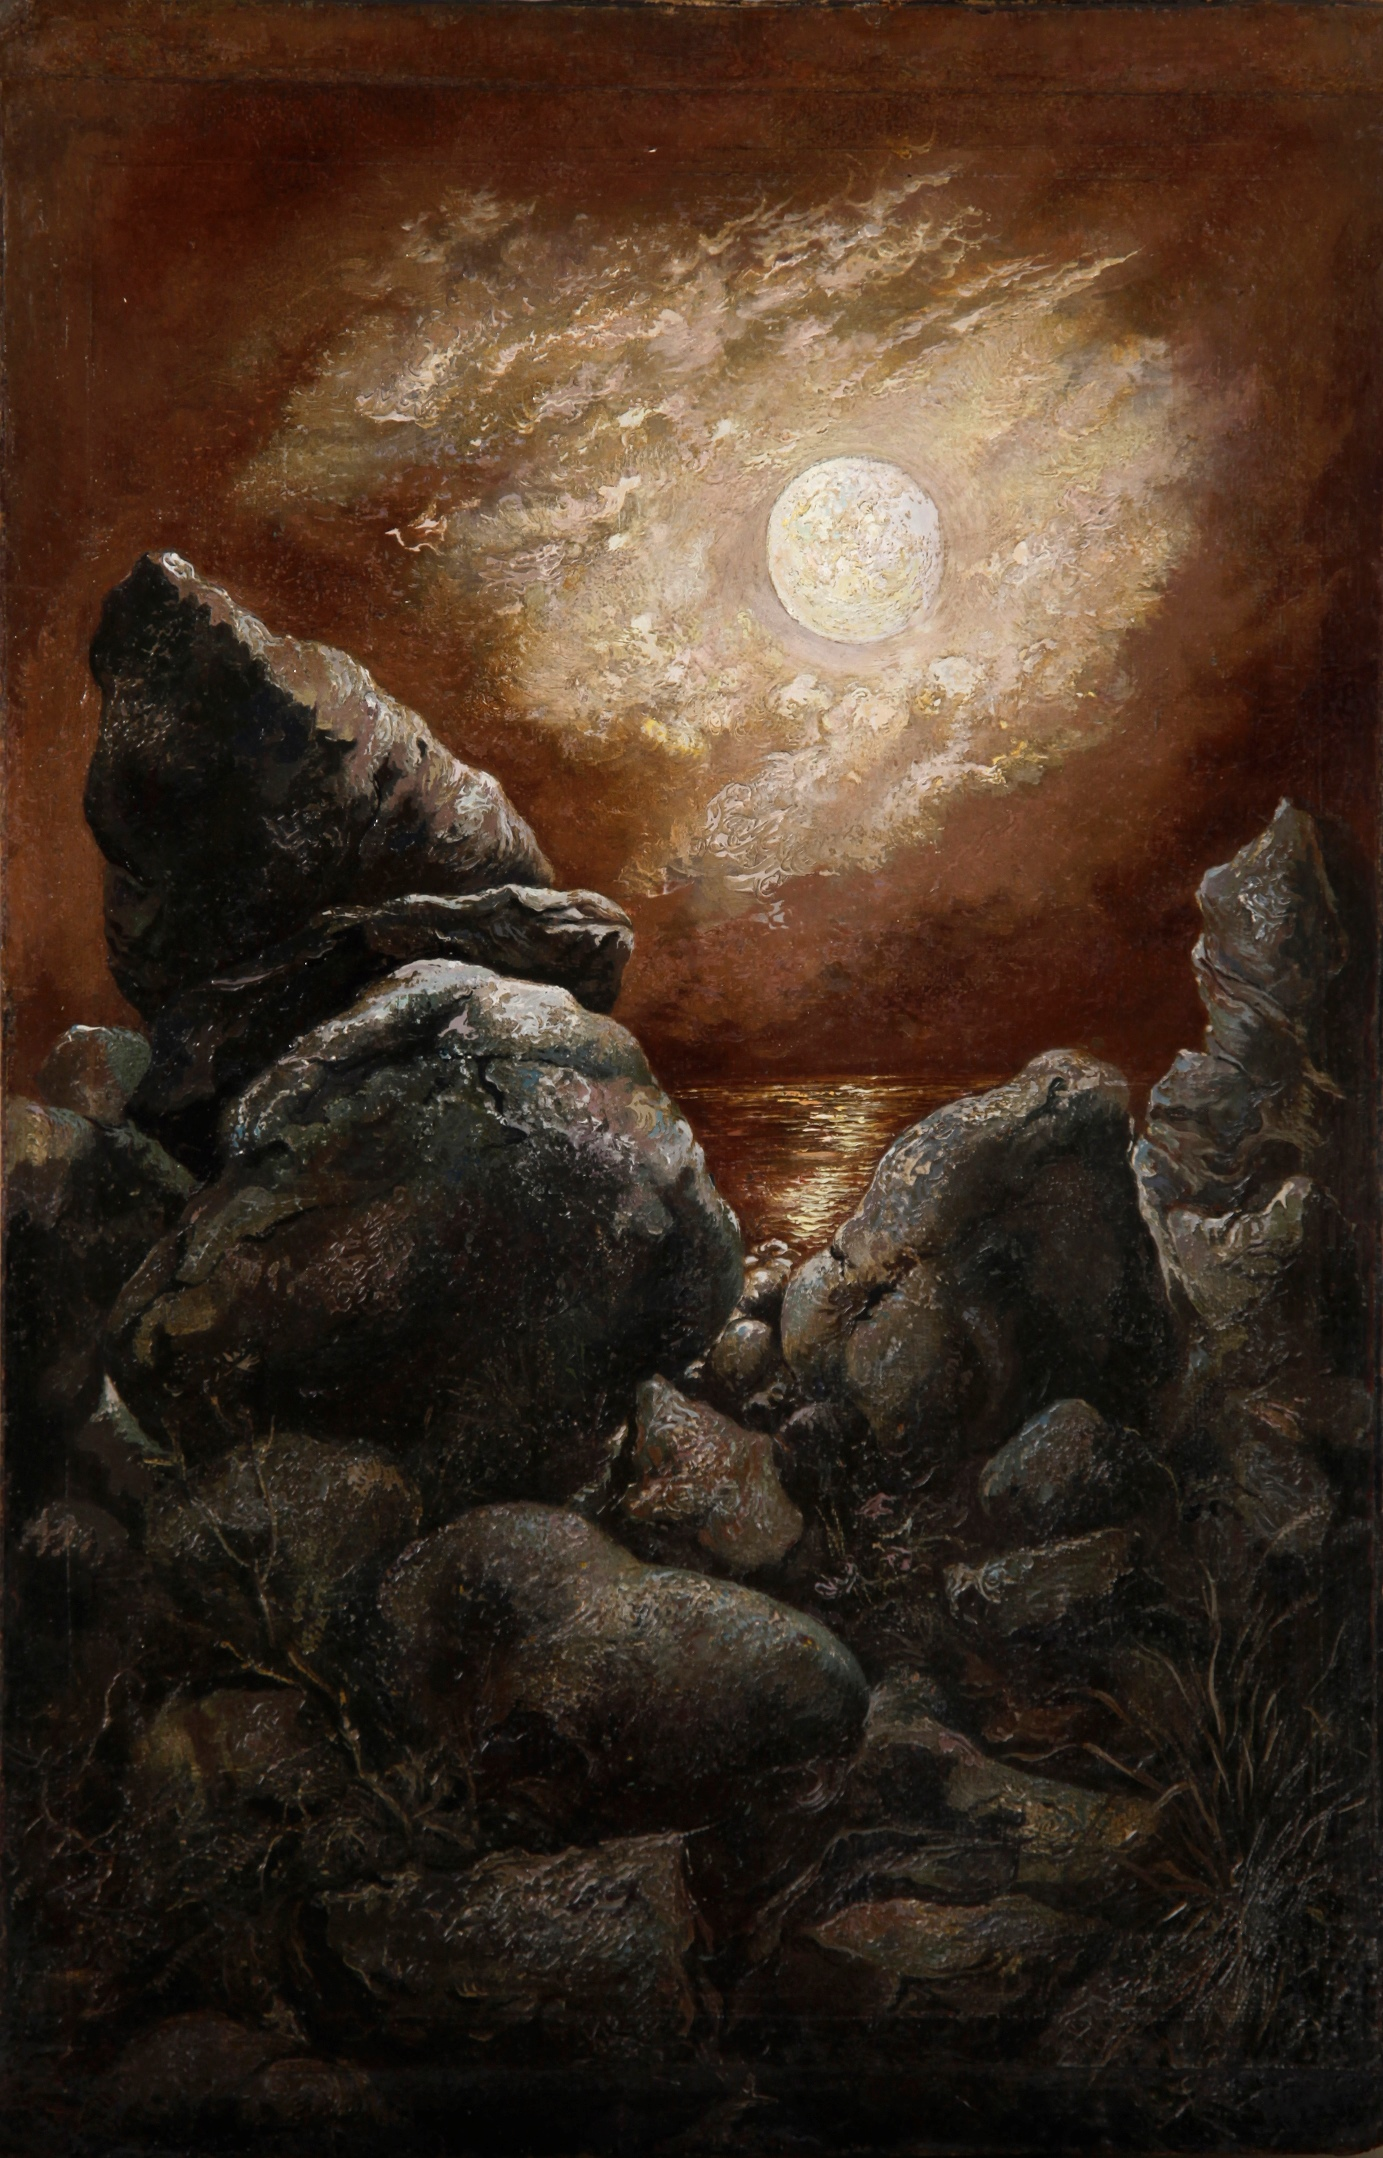 Rocks at Bornholm, Denmark (The Sea, the Rocks and the immortal Moon) by George Grosz